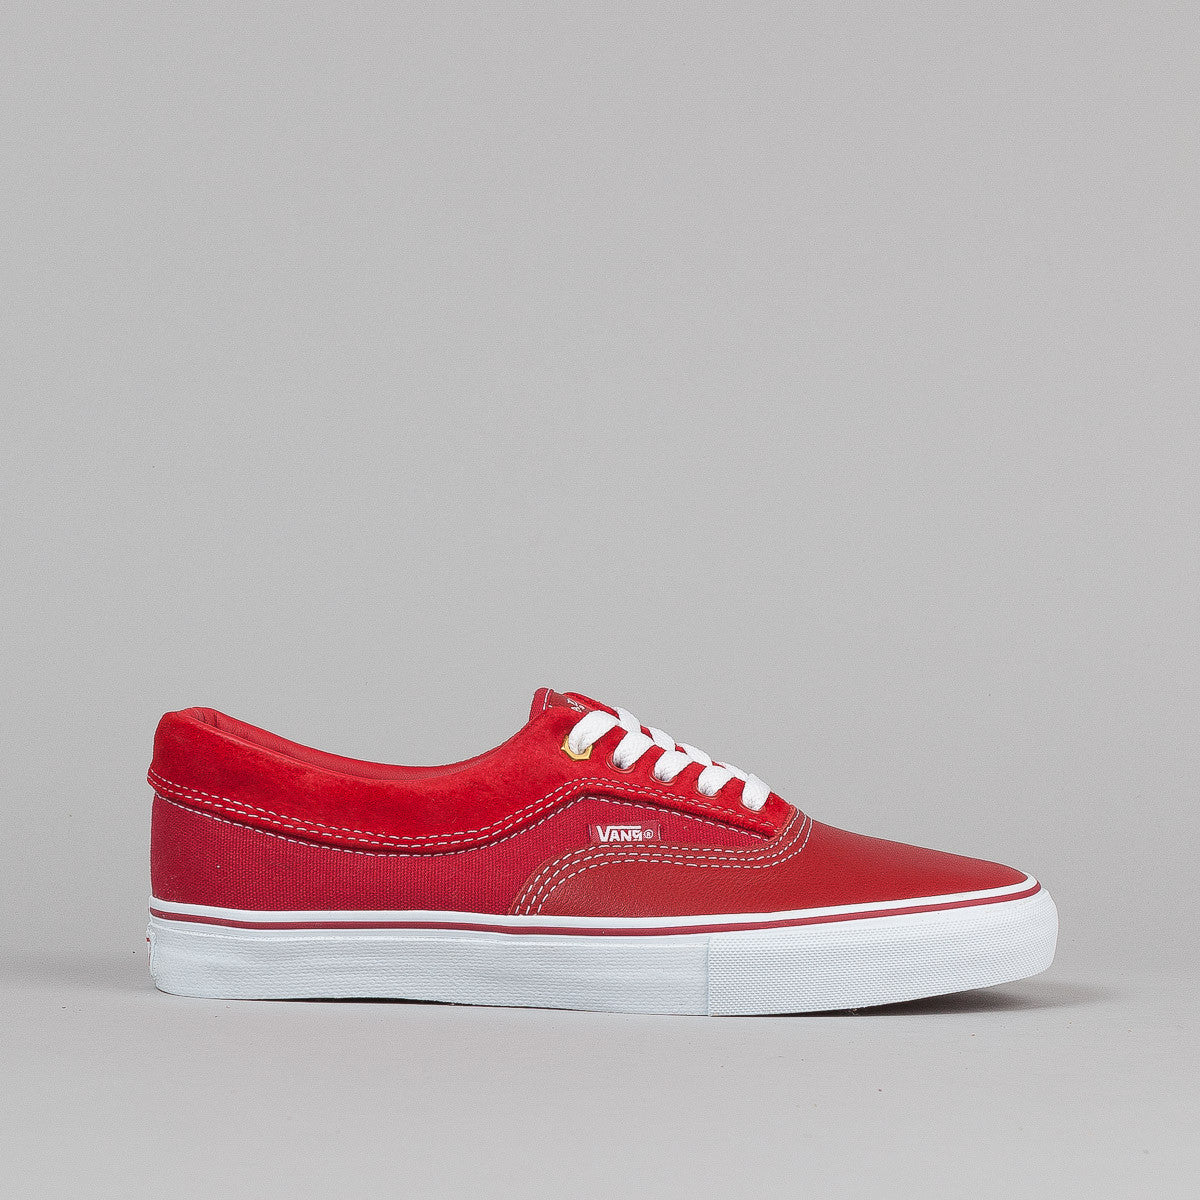 Vans Era 79 'S' Shoes